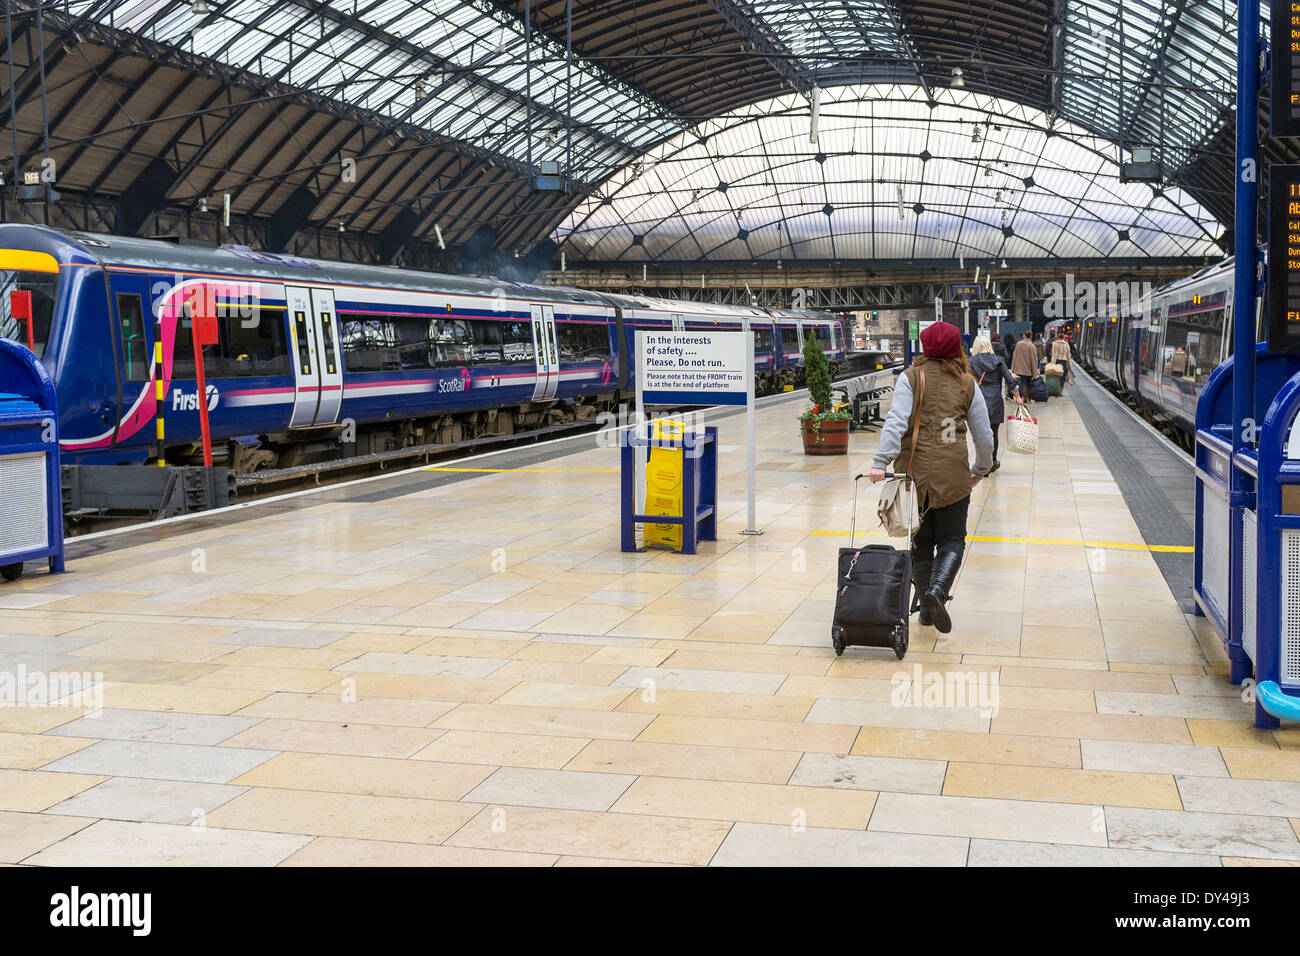 Passengers on the platform at Queen Street Railway Station, Queen Street, Glasgow, Scotland, UK - Stock Image